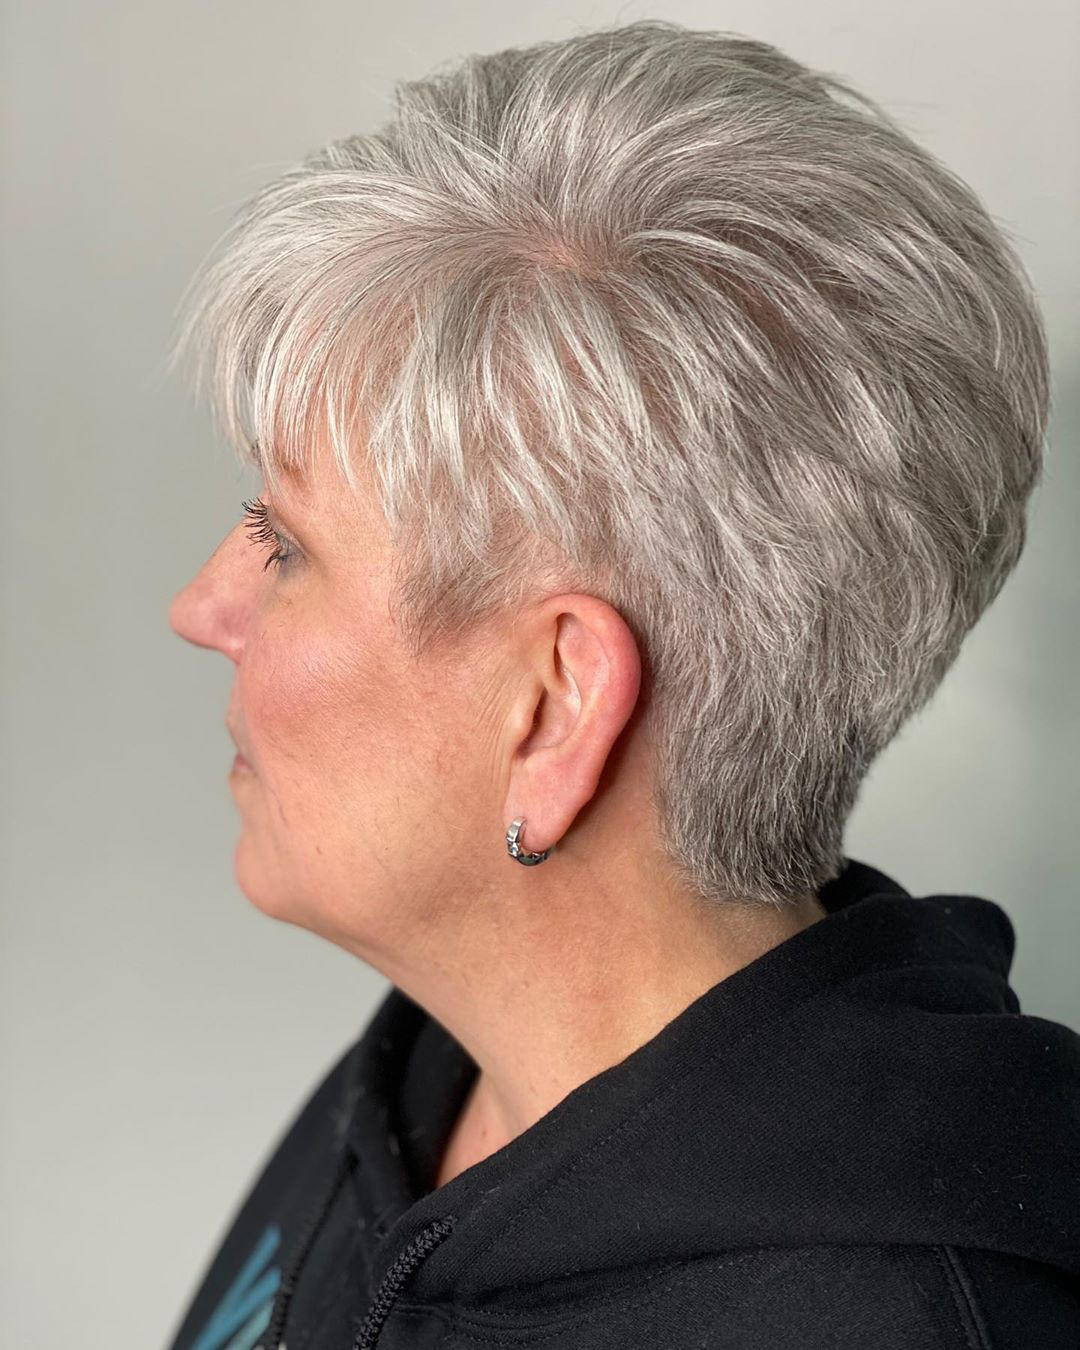 17 Trendiest Pixie Haircuts for Women Over 50